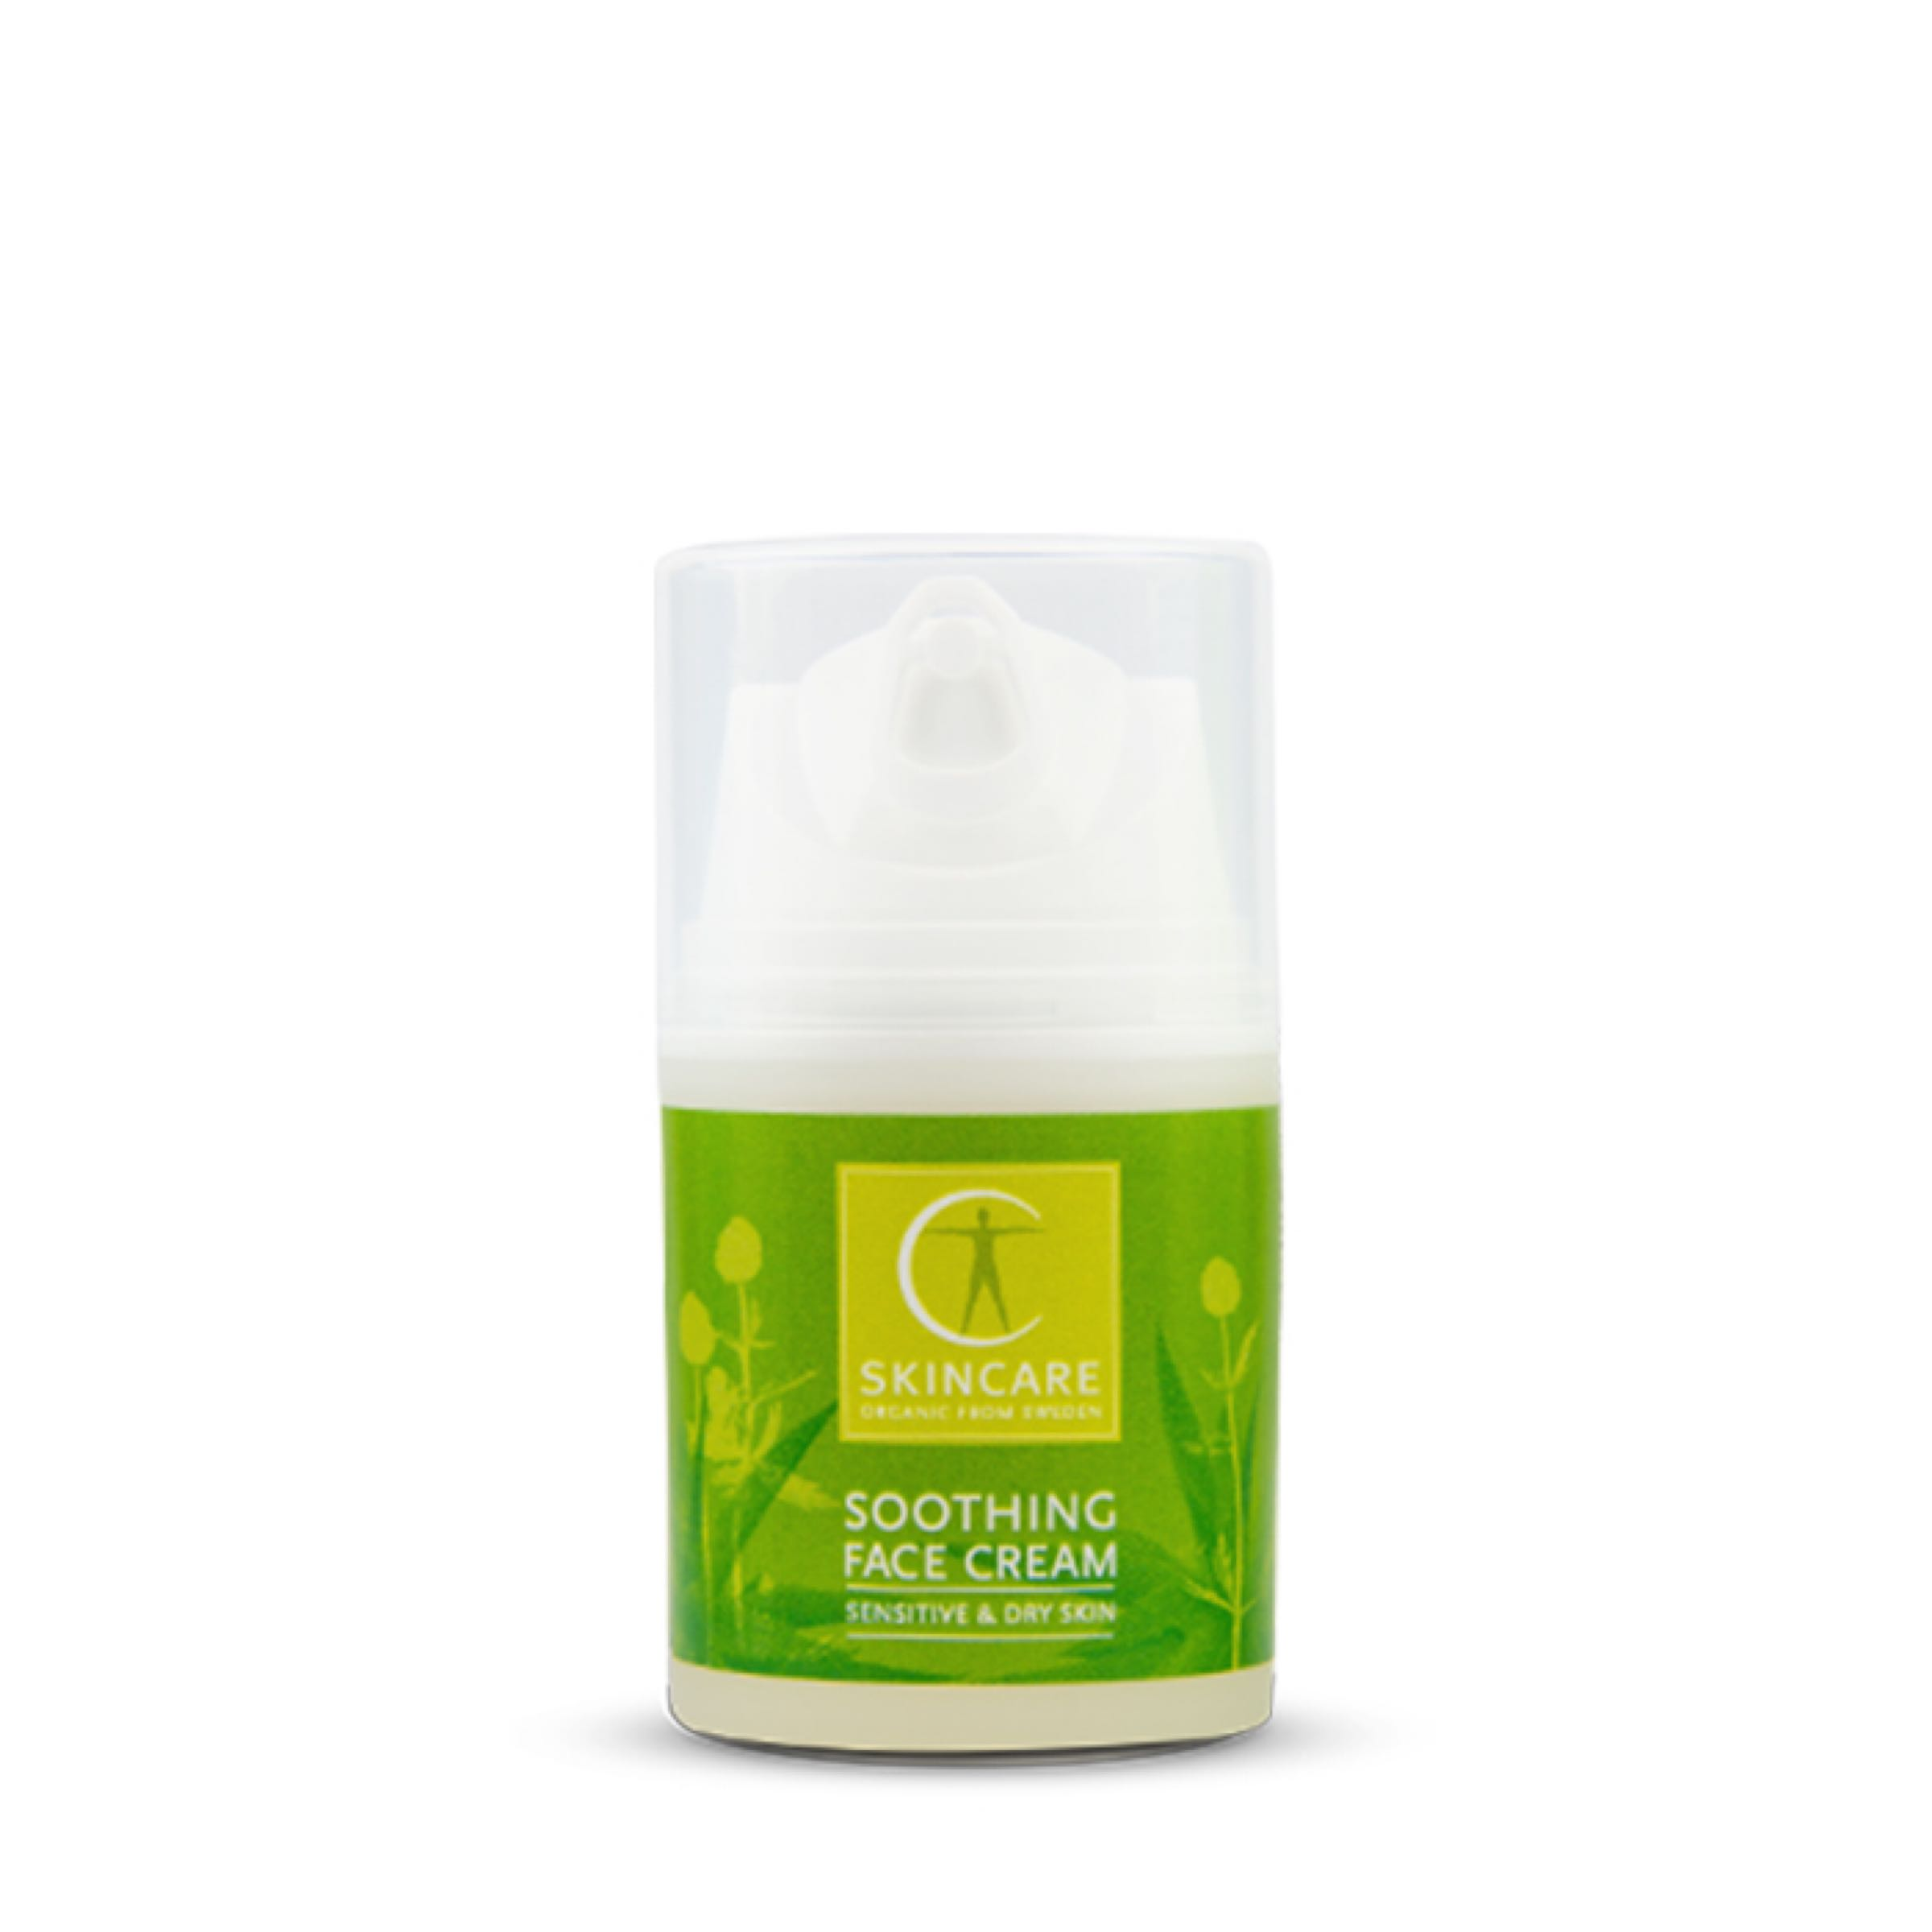 C Skincare Facecream